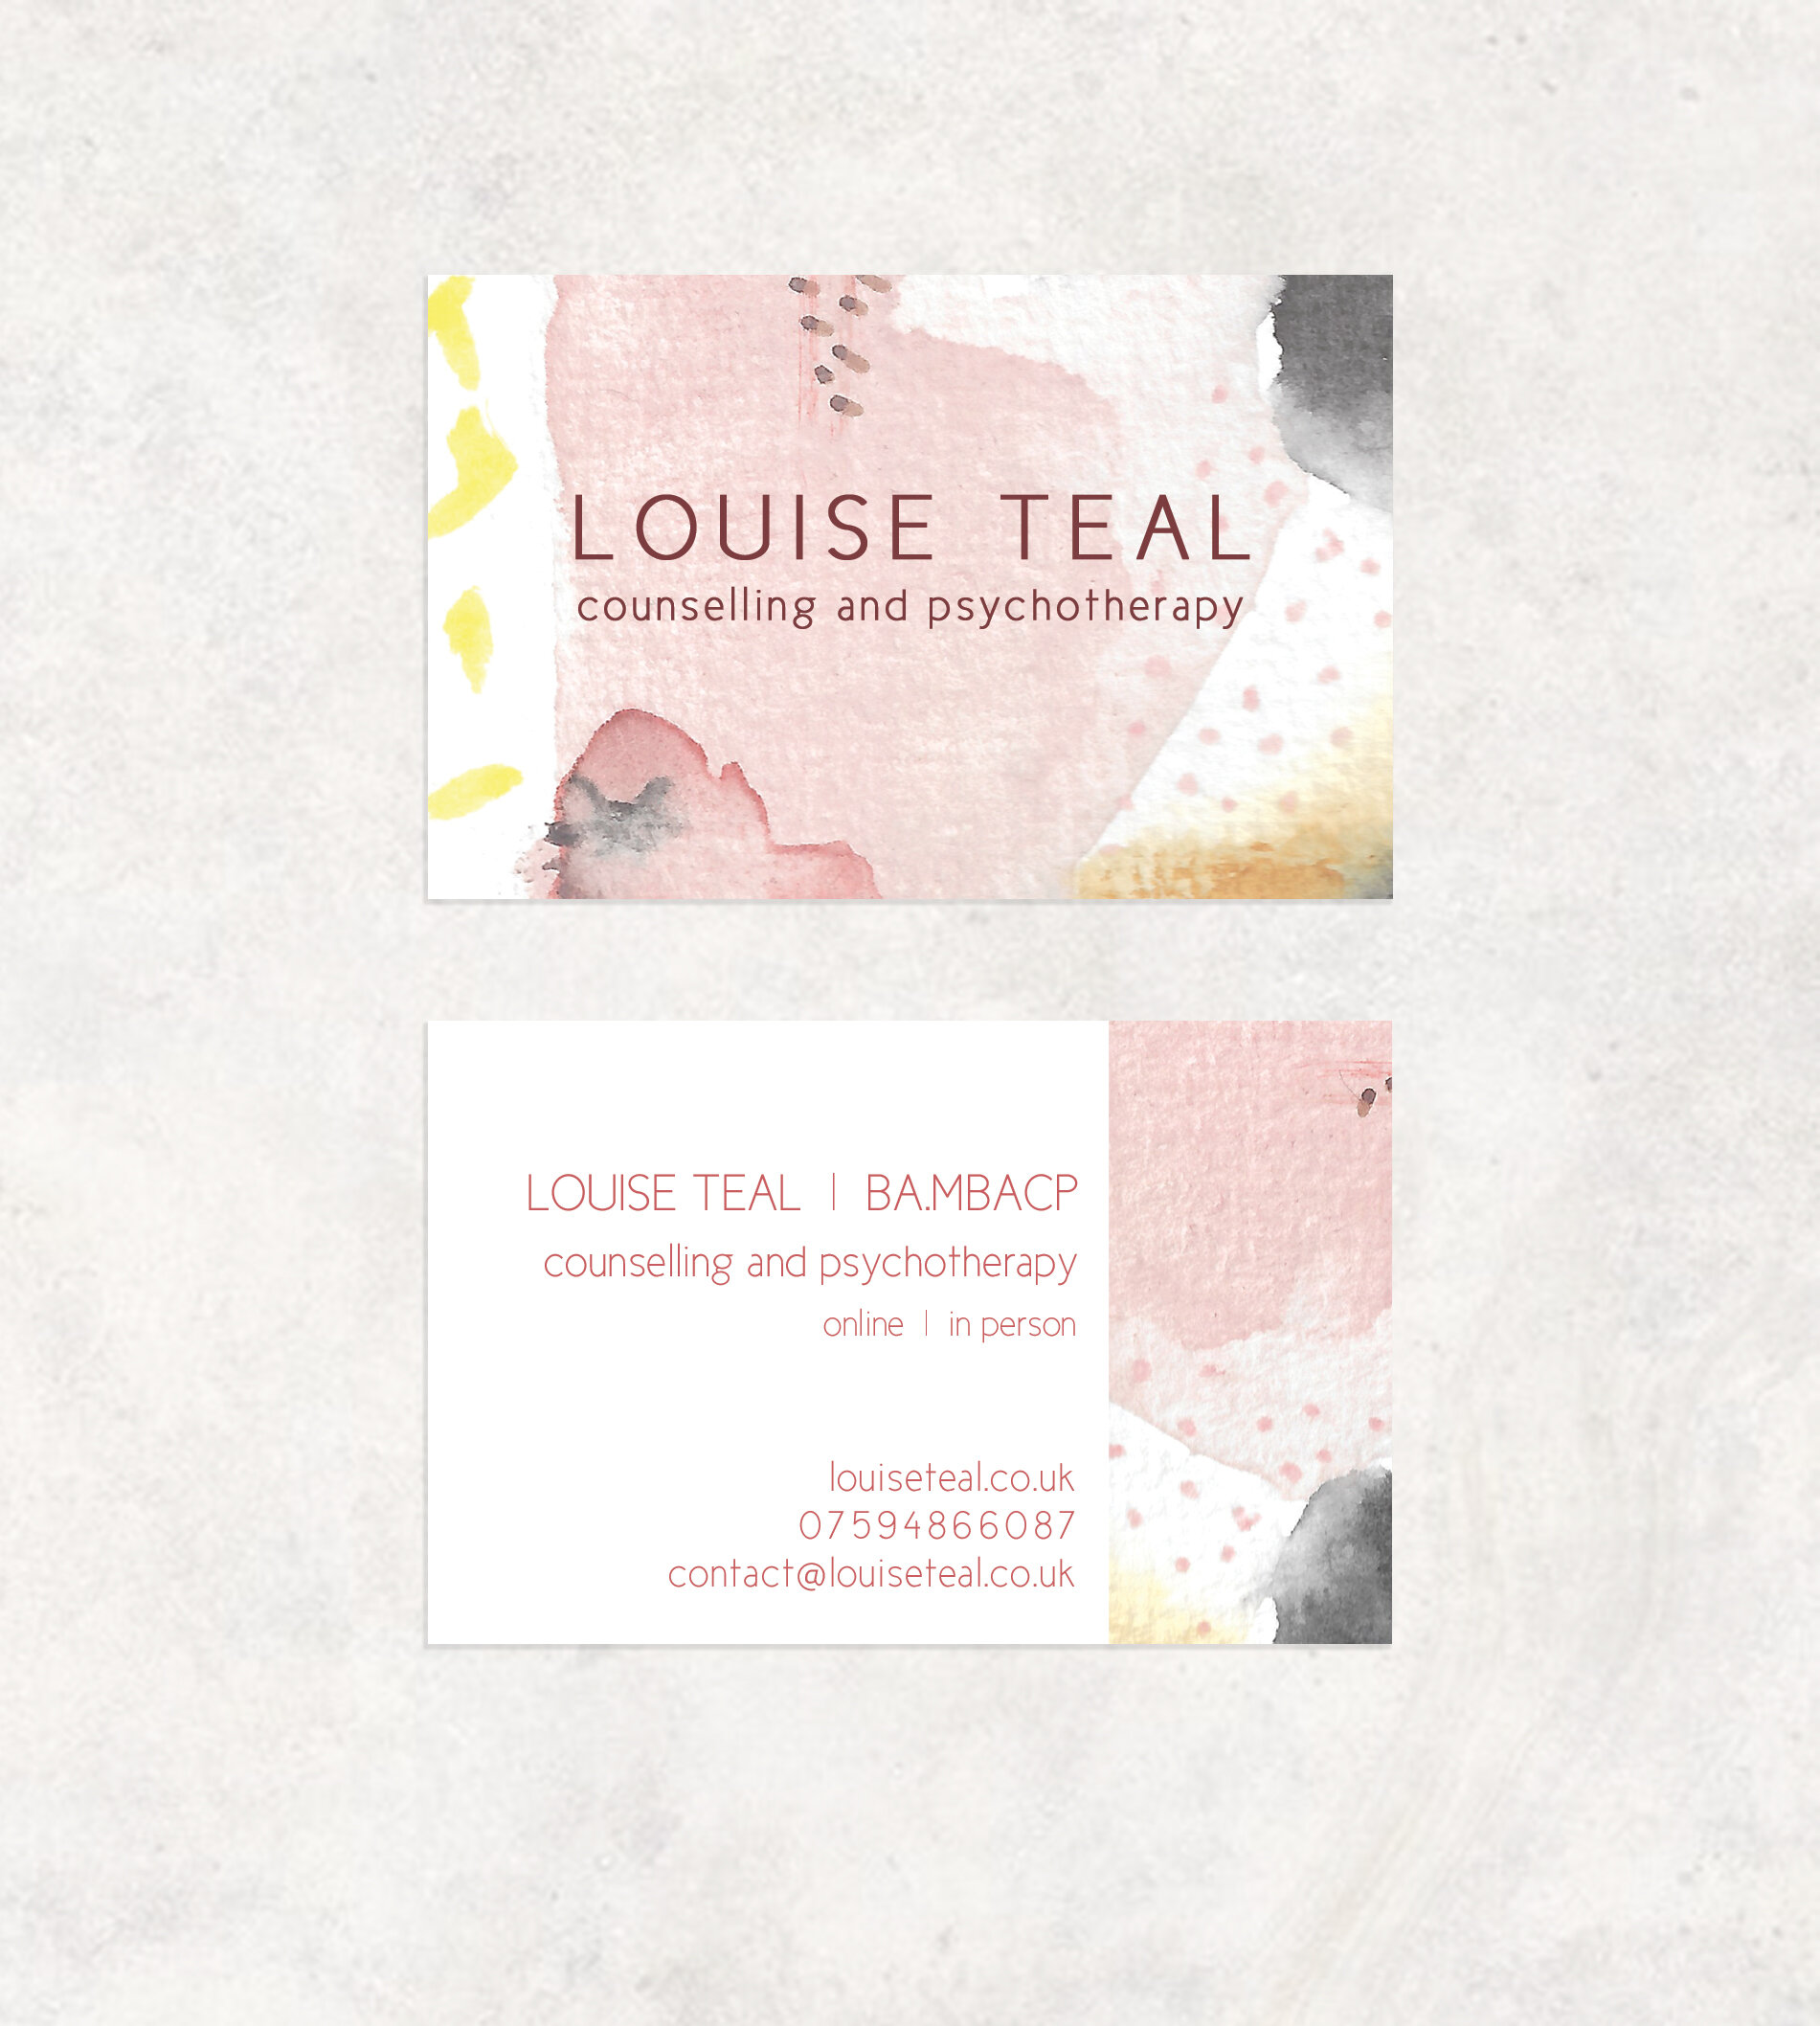 Business card design for Louise Teal